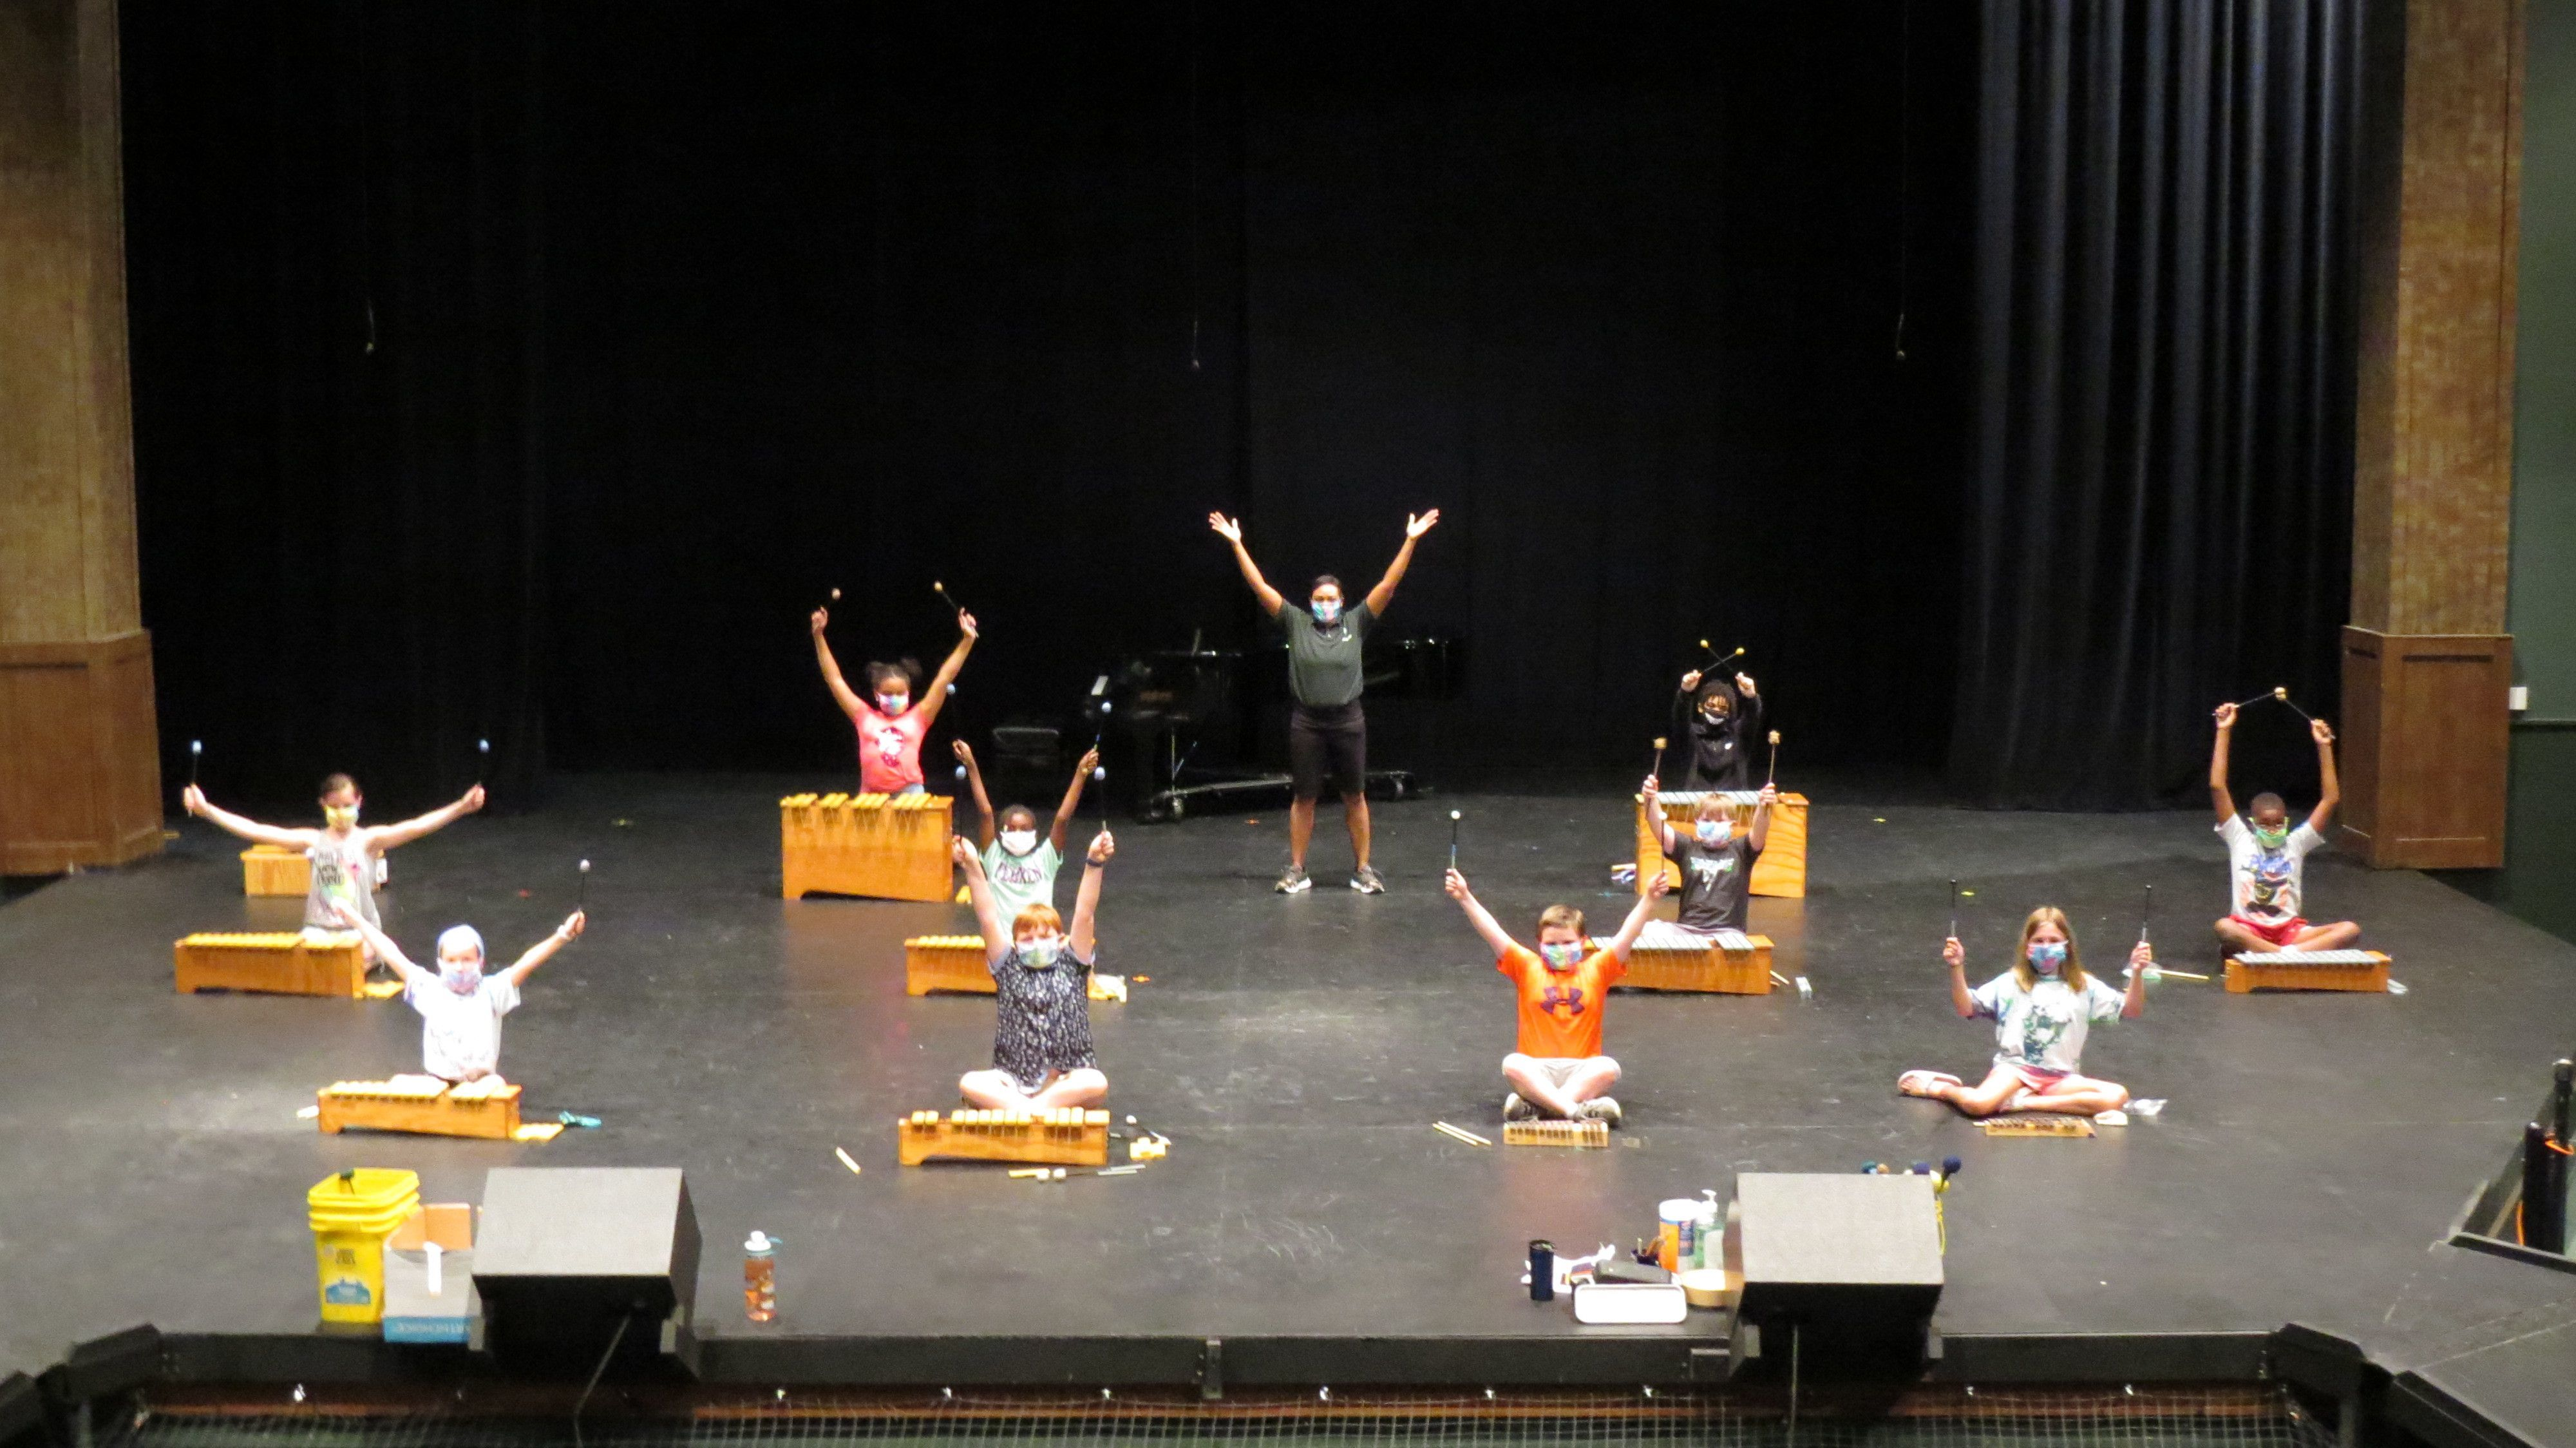 A socially distanced group of elementary aged students and their instructors pose on a large stage with their orff instruments